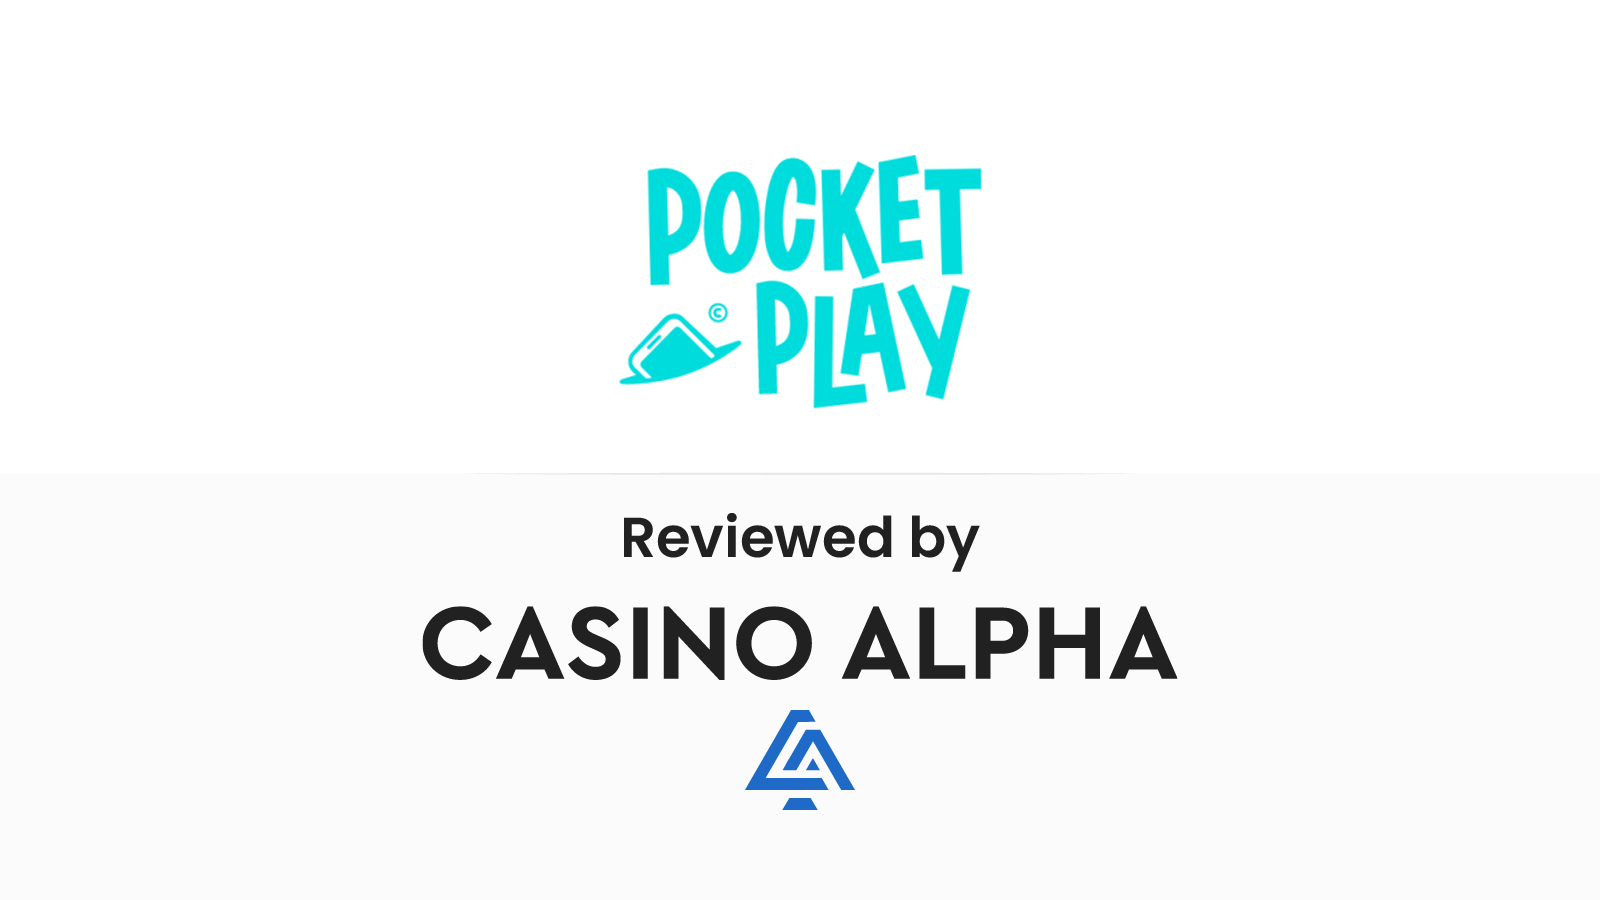 Pocket Play Review & Offers → Complete List